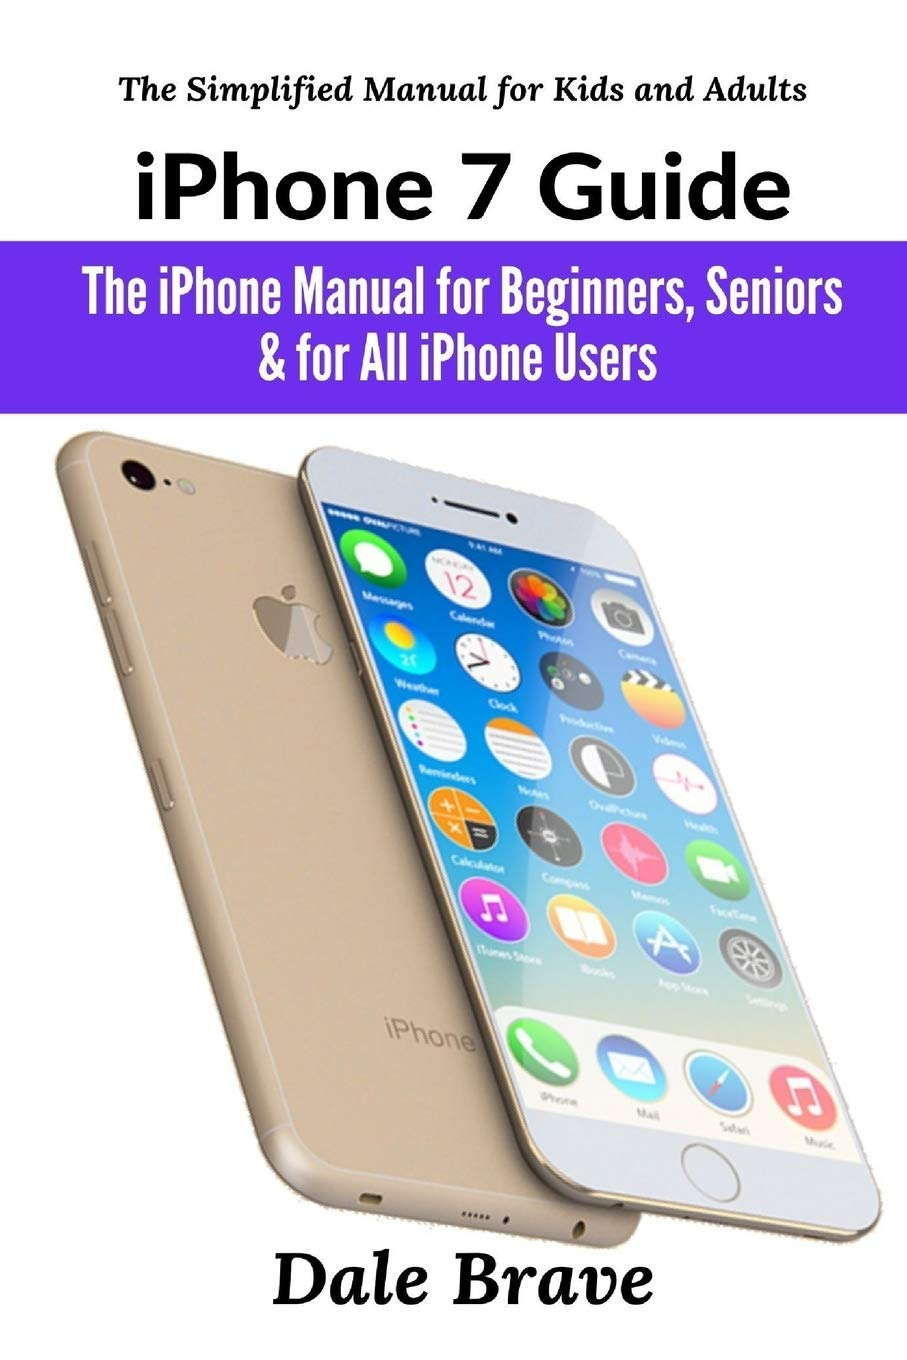 Image OfIPhone 7 Guide: The IPhone Manual For Beginners, Seniors & For All IPhone Users (The Simplified Manual For Kids And Adults)